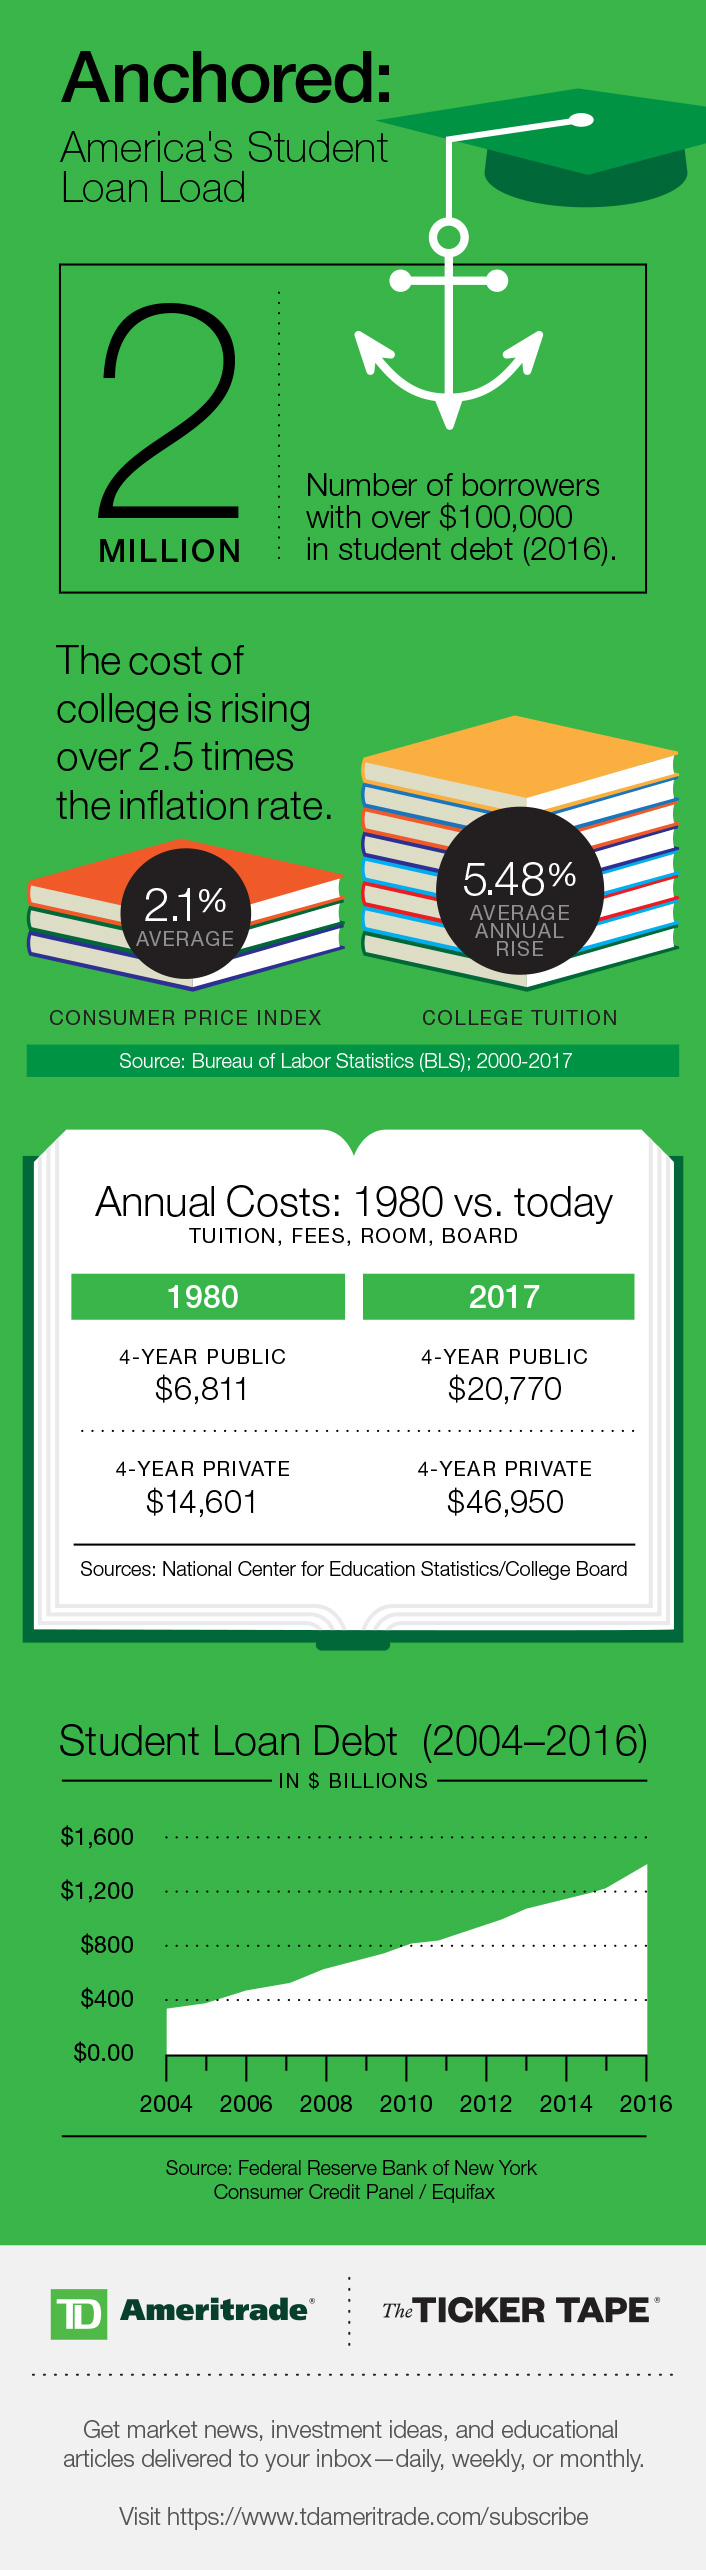 Student loan debt and education costs